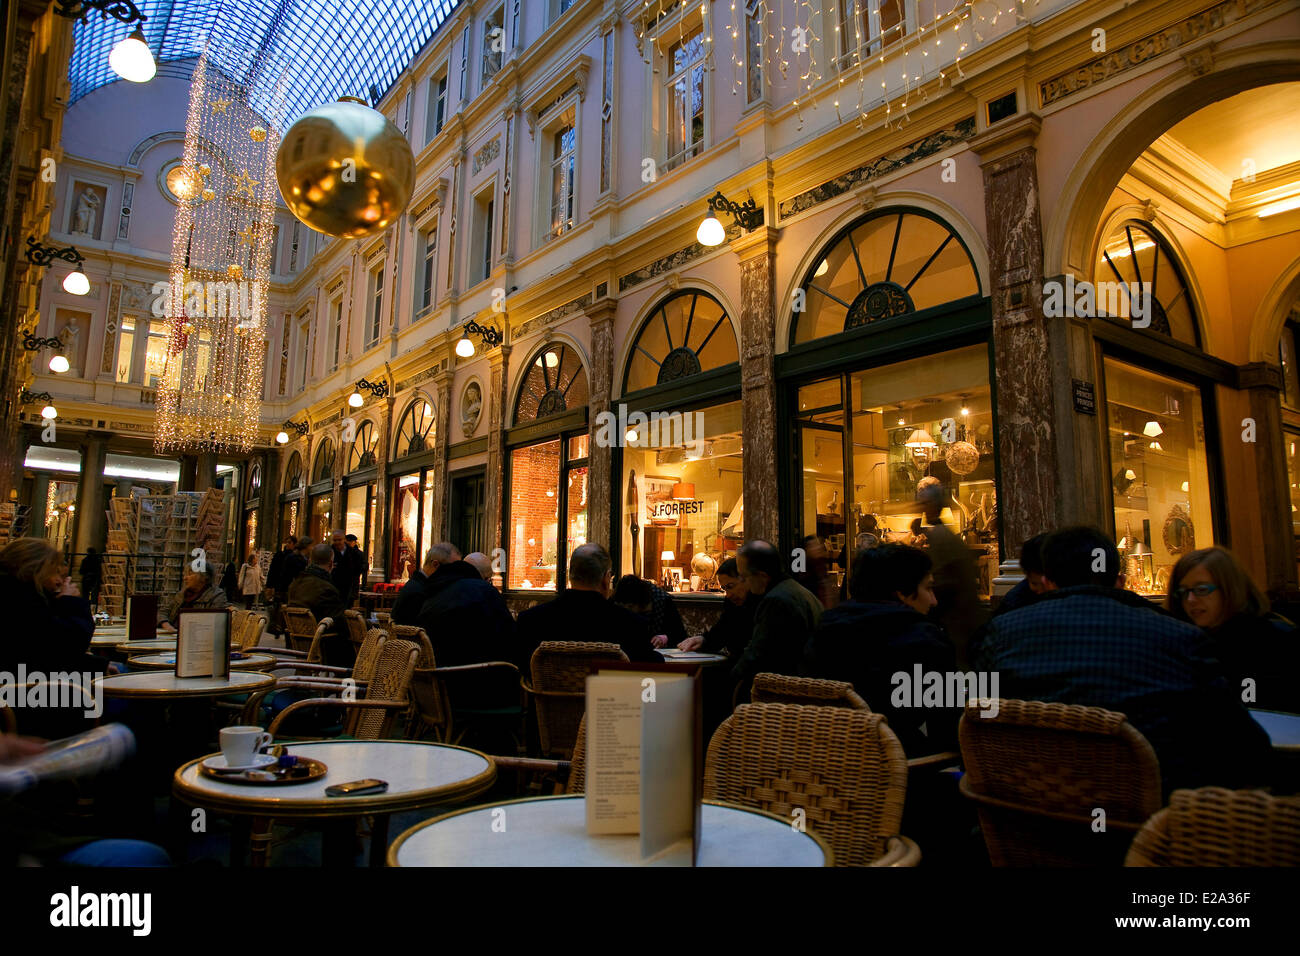 Belgium, Brussels, Royals galleries of St Hubert - Stock Image